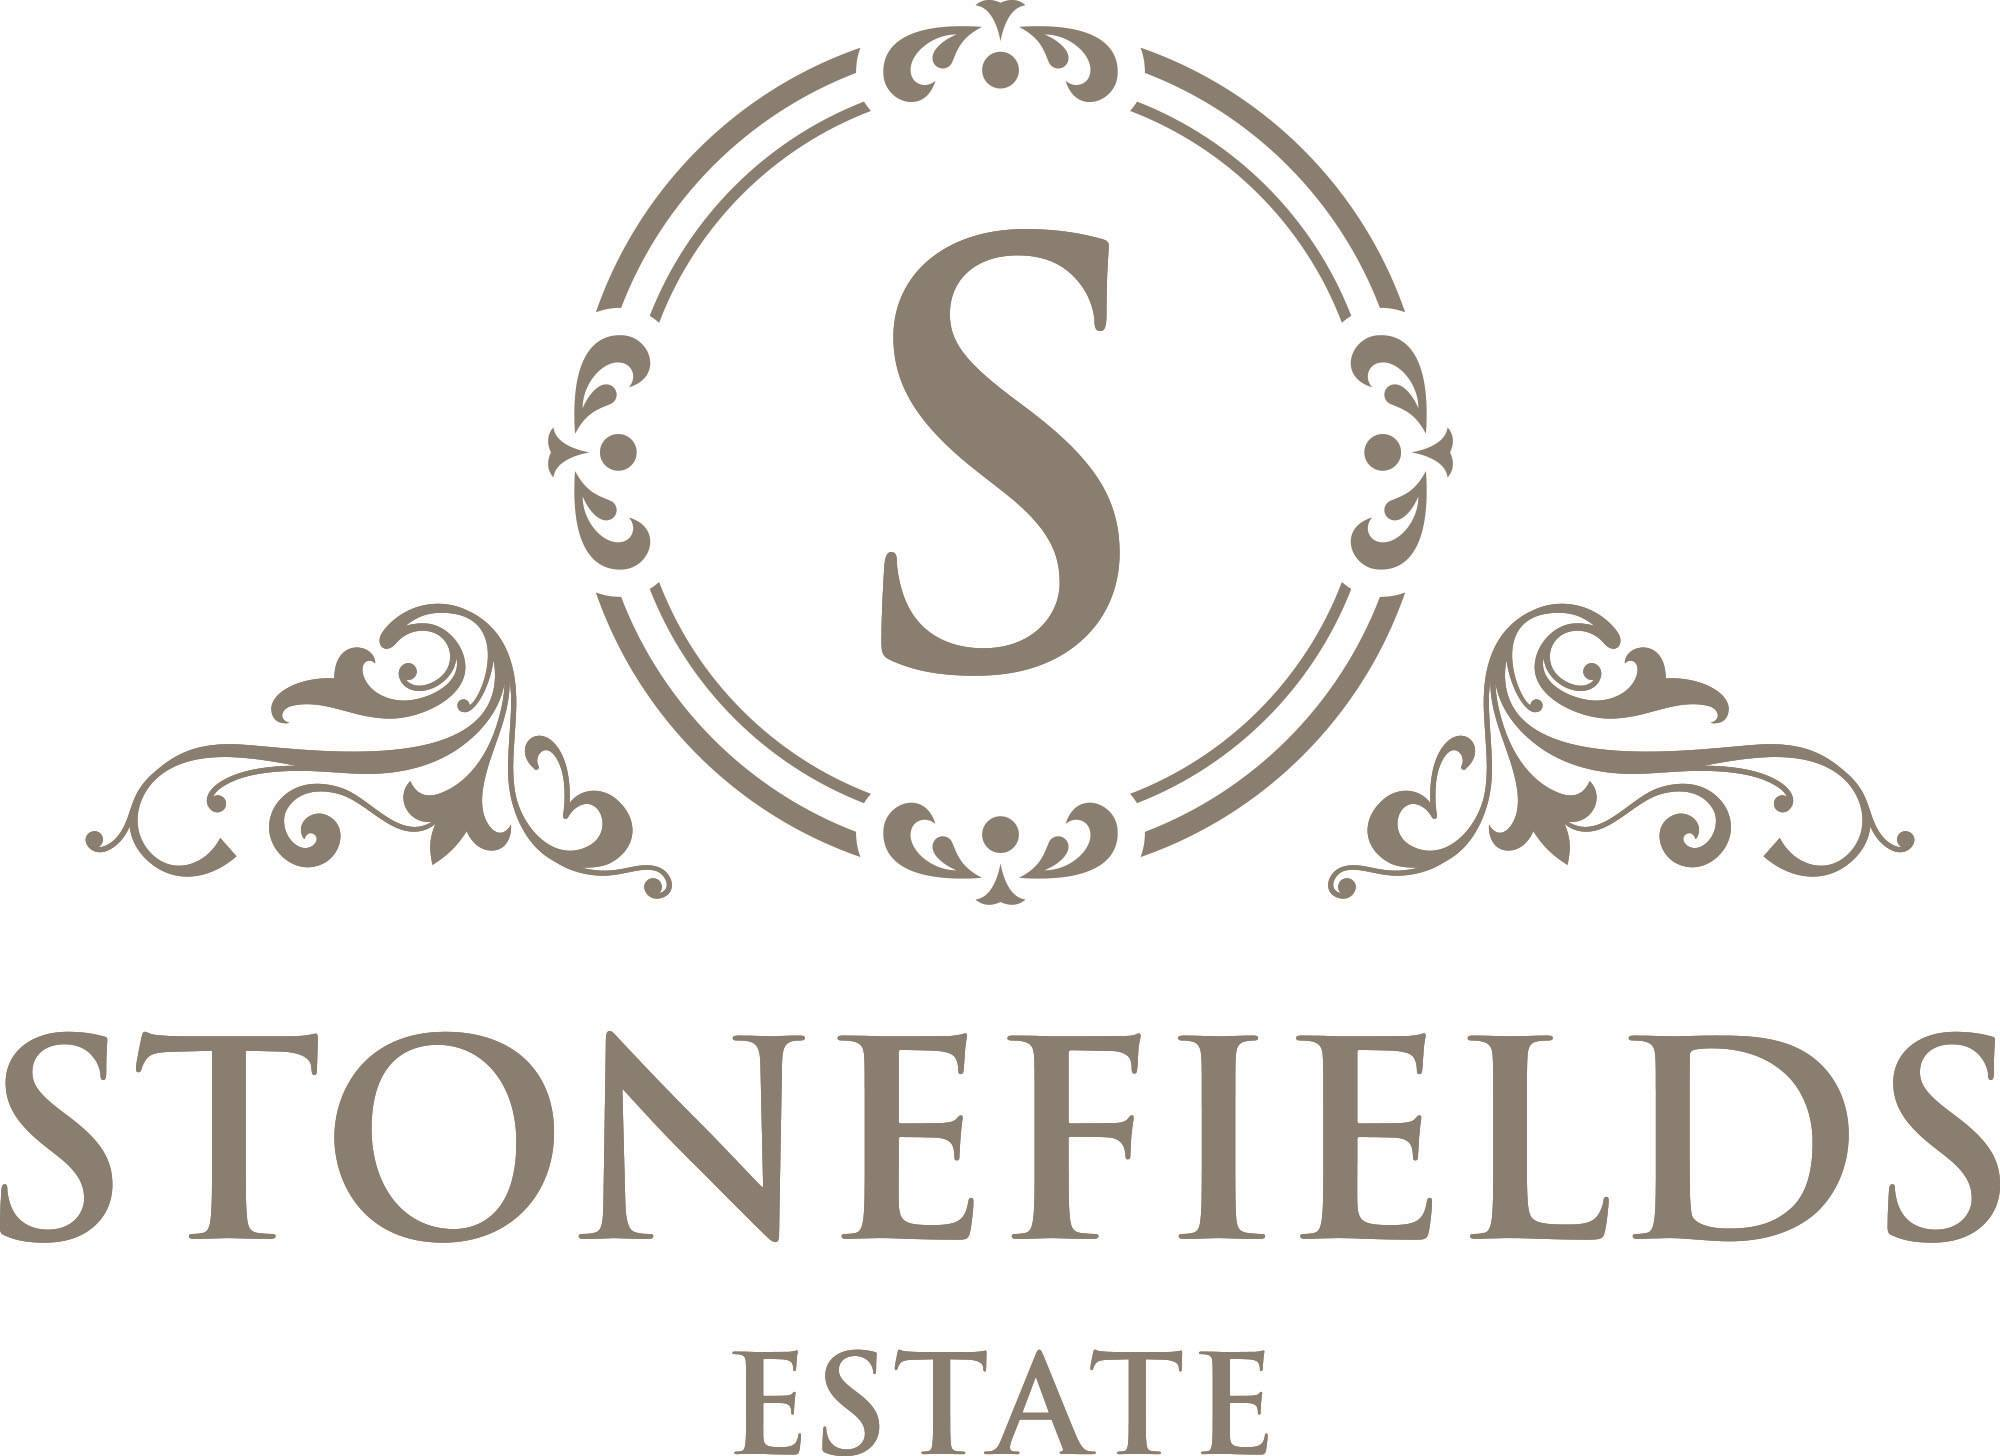 Stonefields Logo.jpg